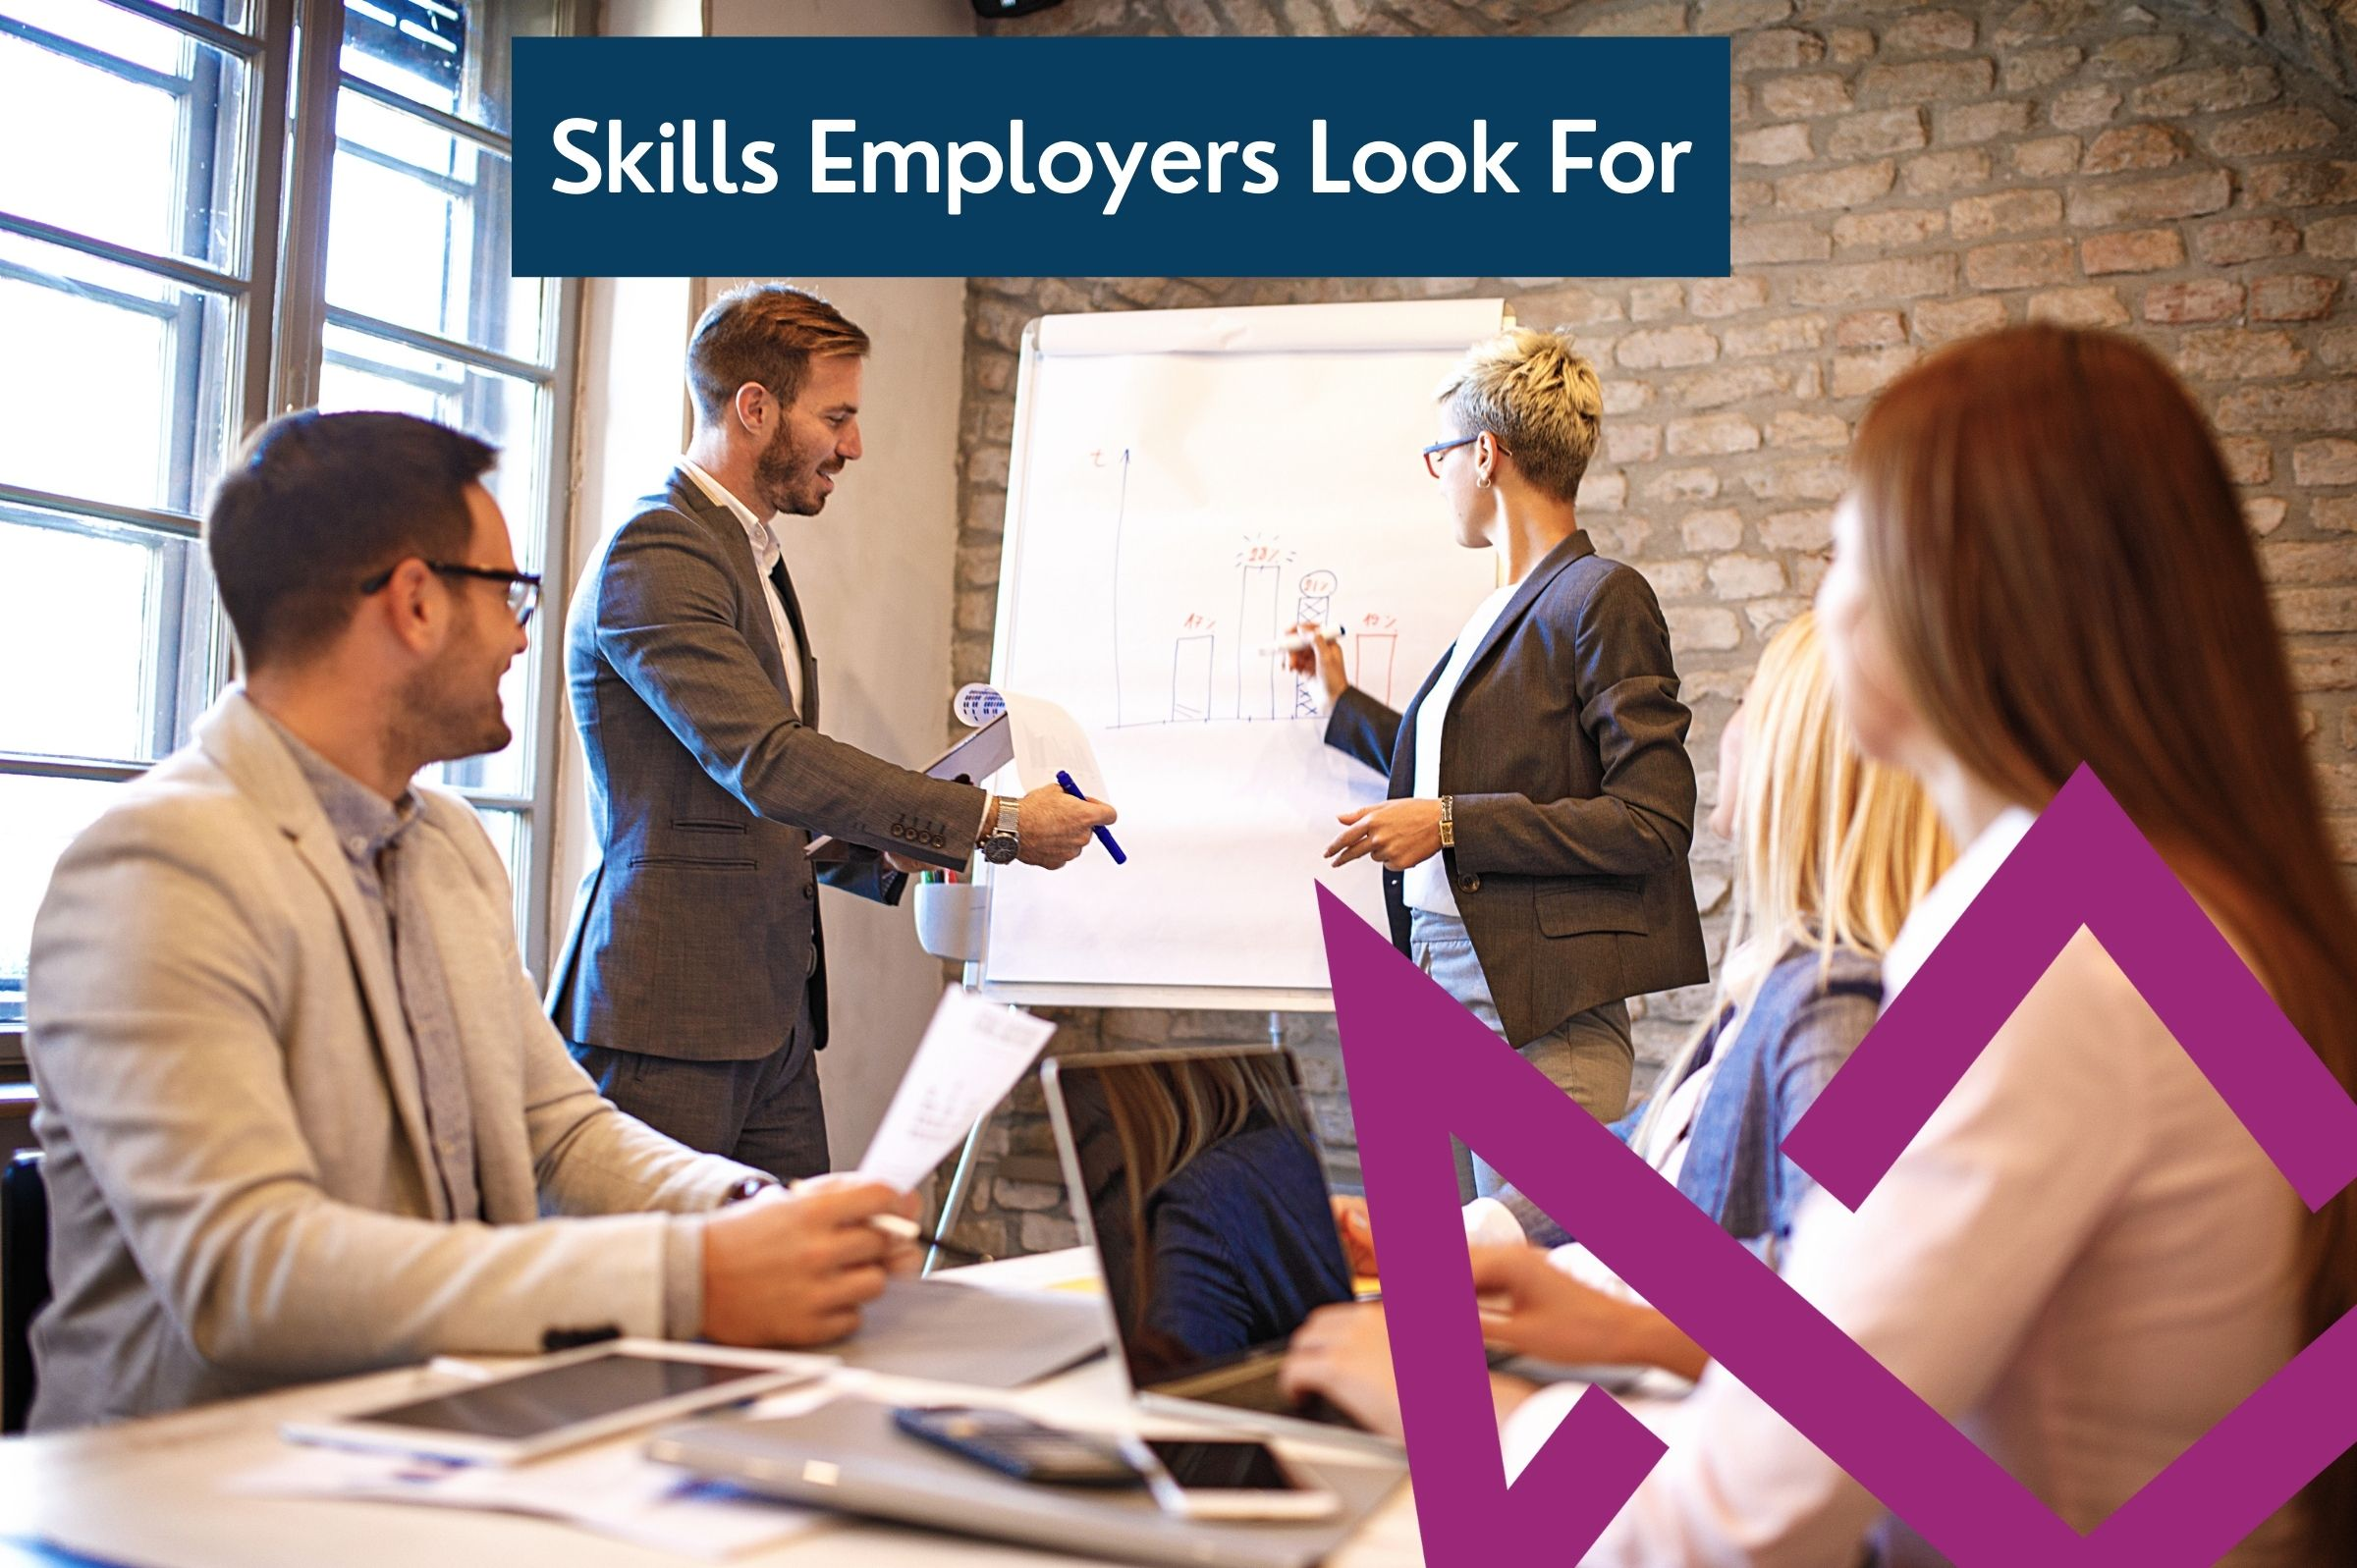 Top Skills Employers Look For